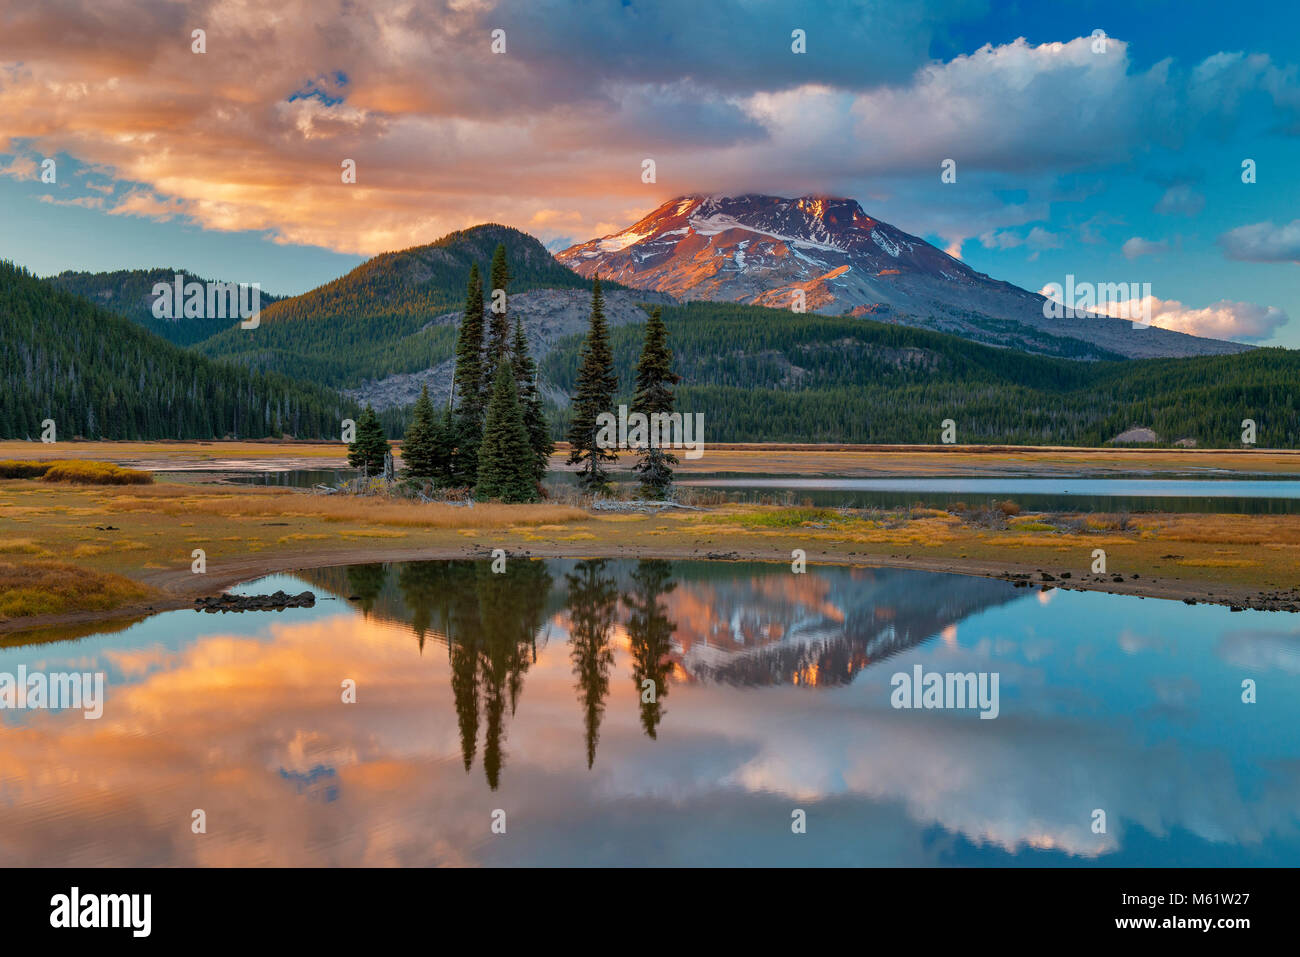 South Sister, Sparks Lake, Deschutes National Forest, Oregon - Stock Image